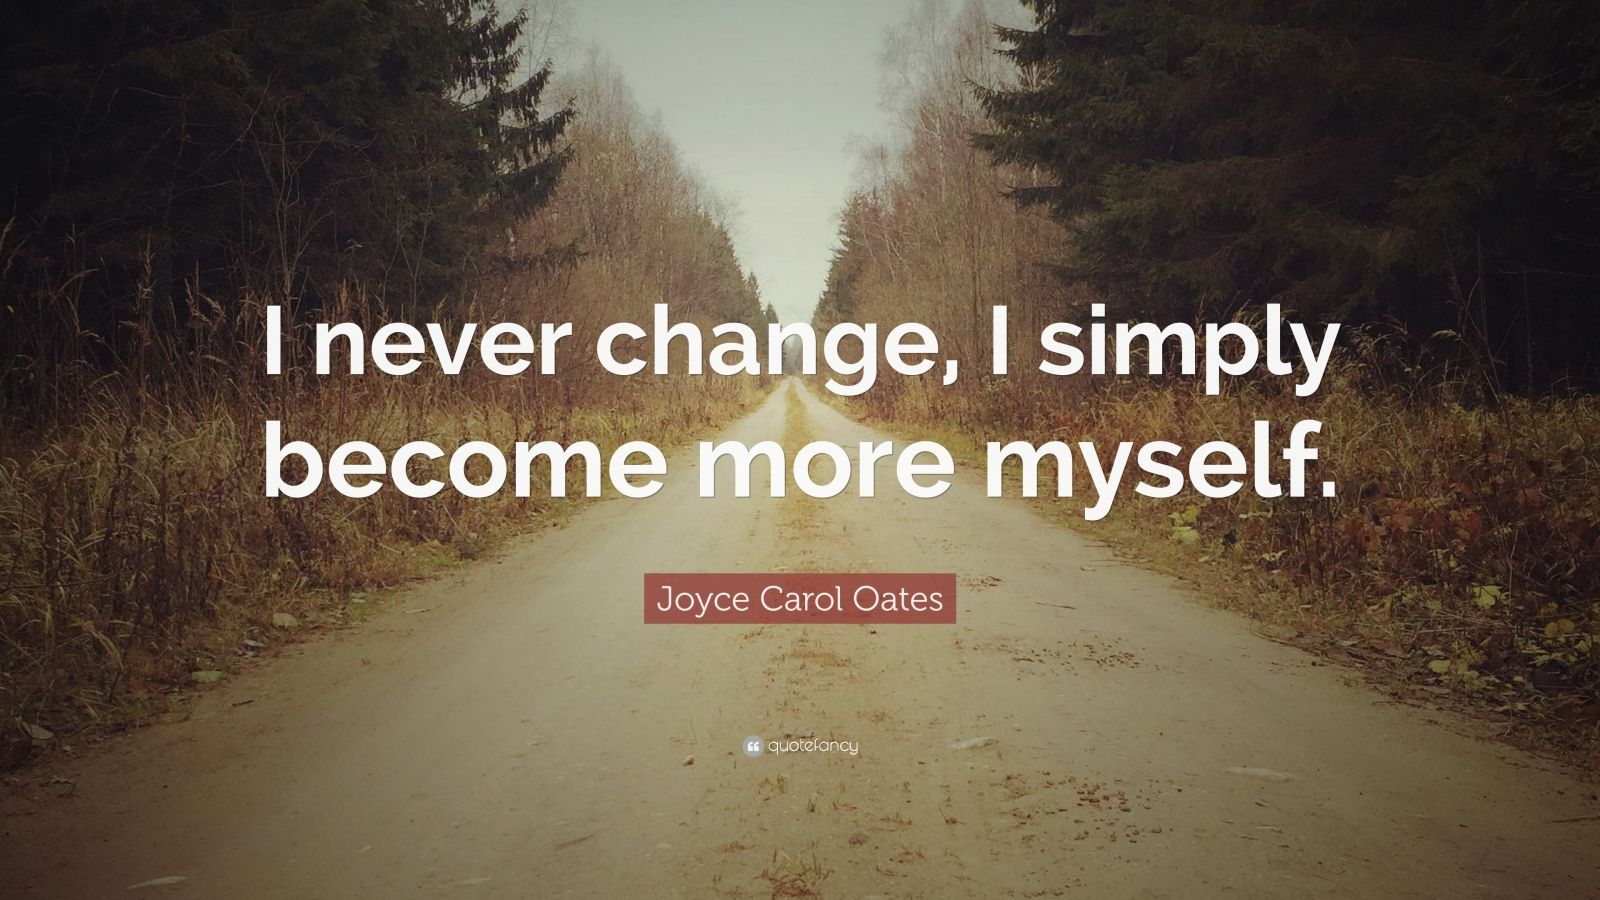 joyce carol oates quotes 100 quotefancy joyce carol oates quote i never change i simply become more myself